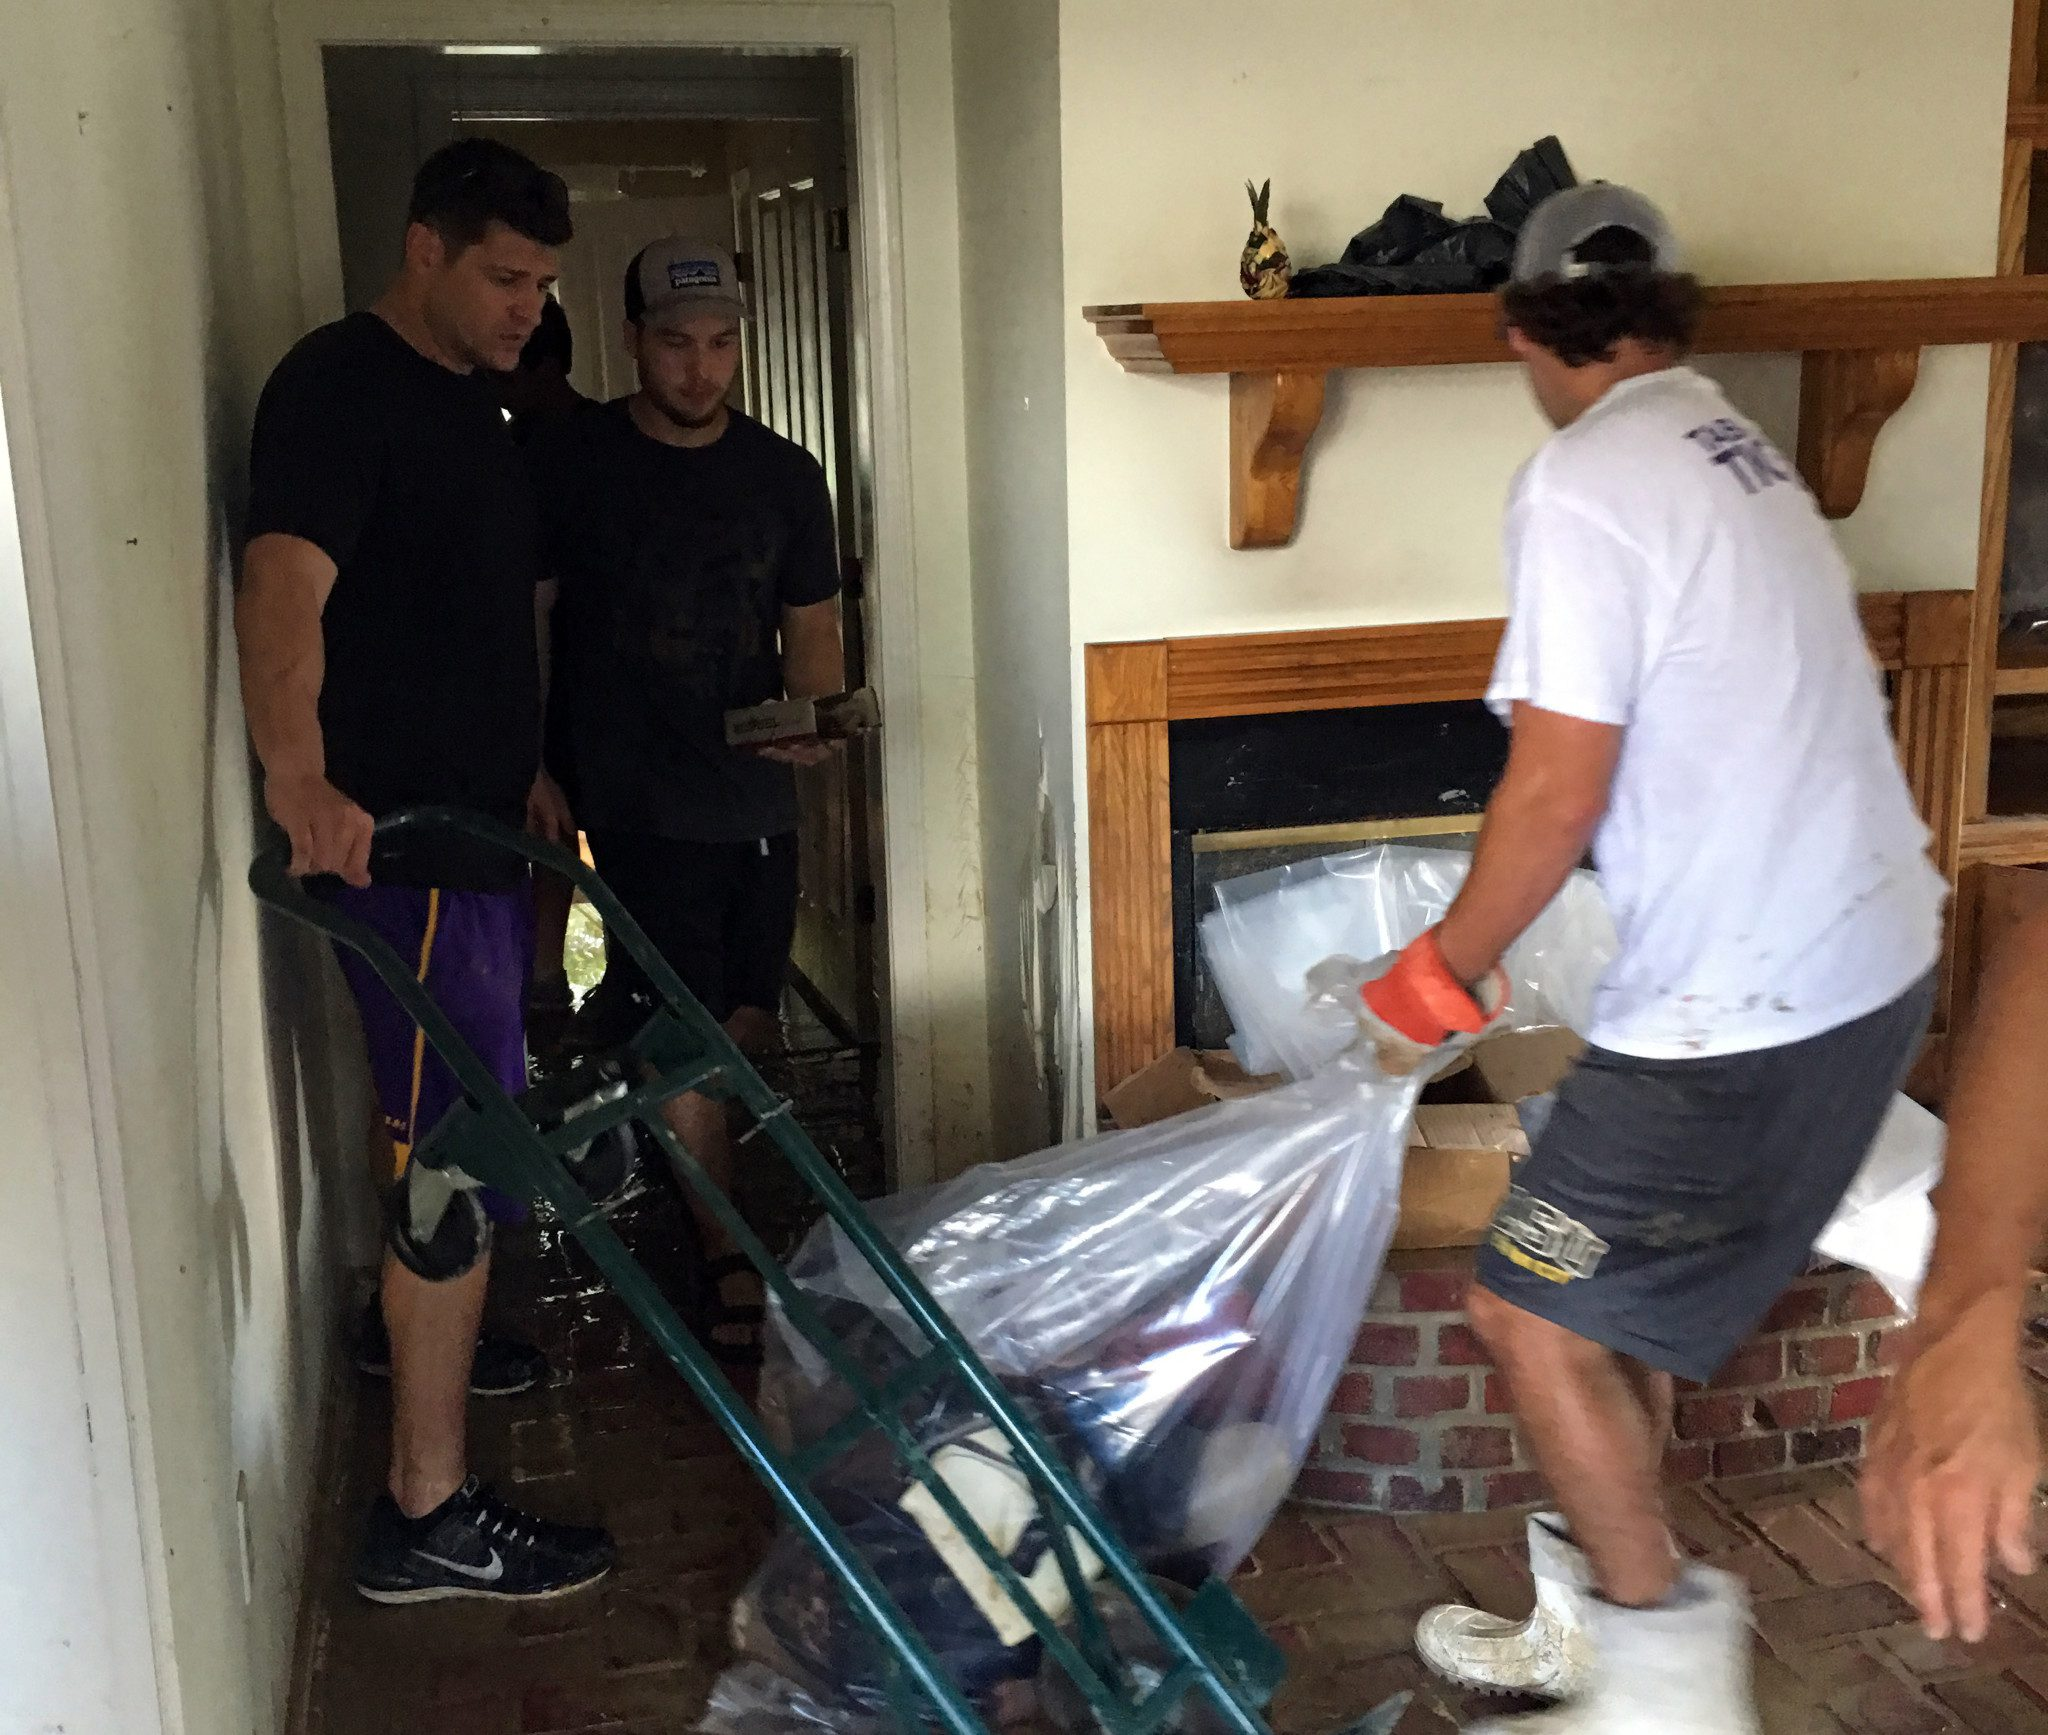 LSU helped clean up the house of Ben McDonald's mother-in-law. (LSU)